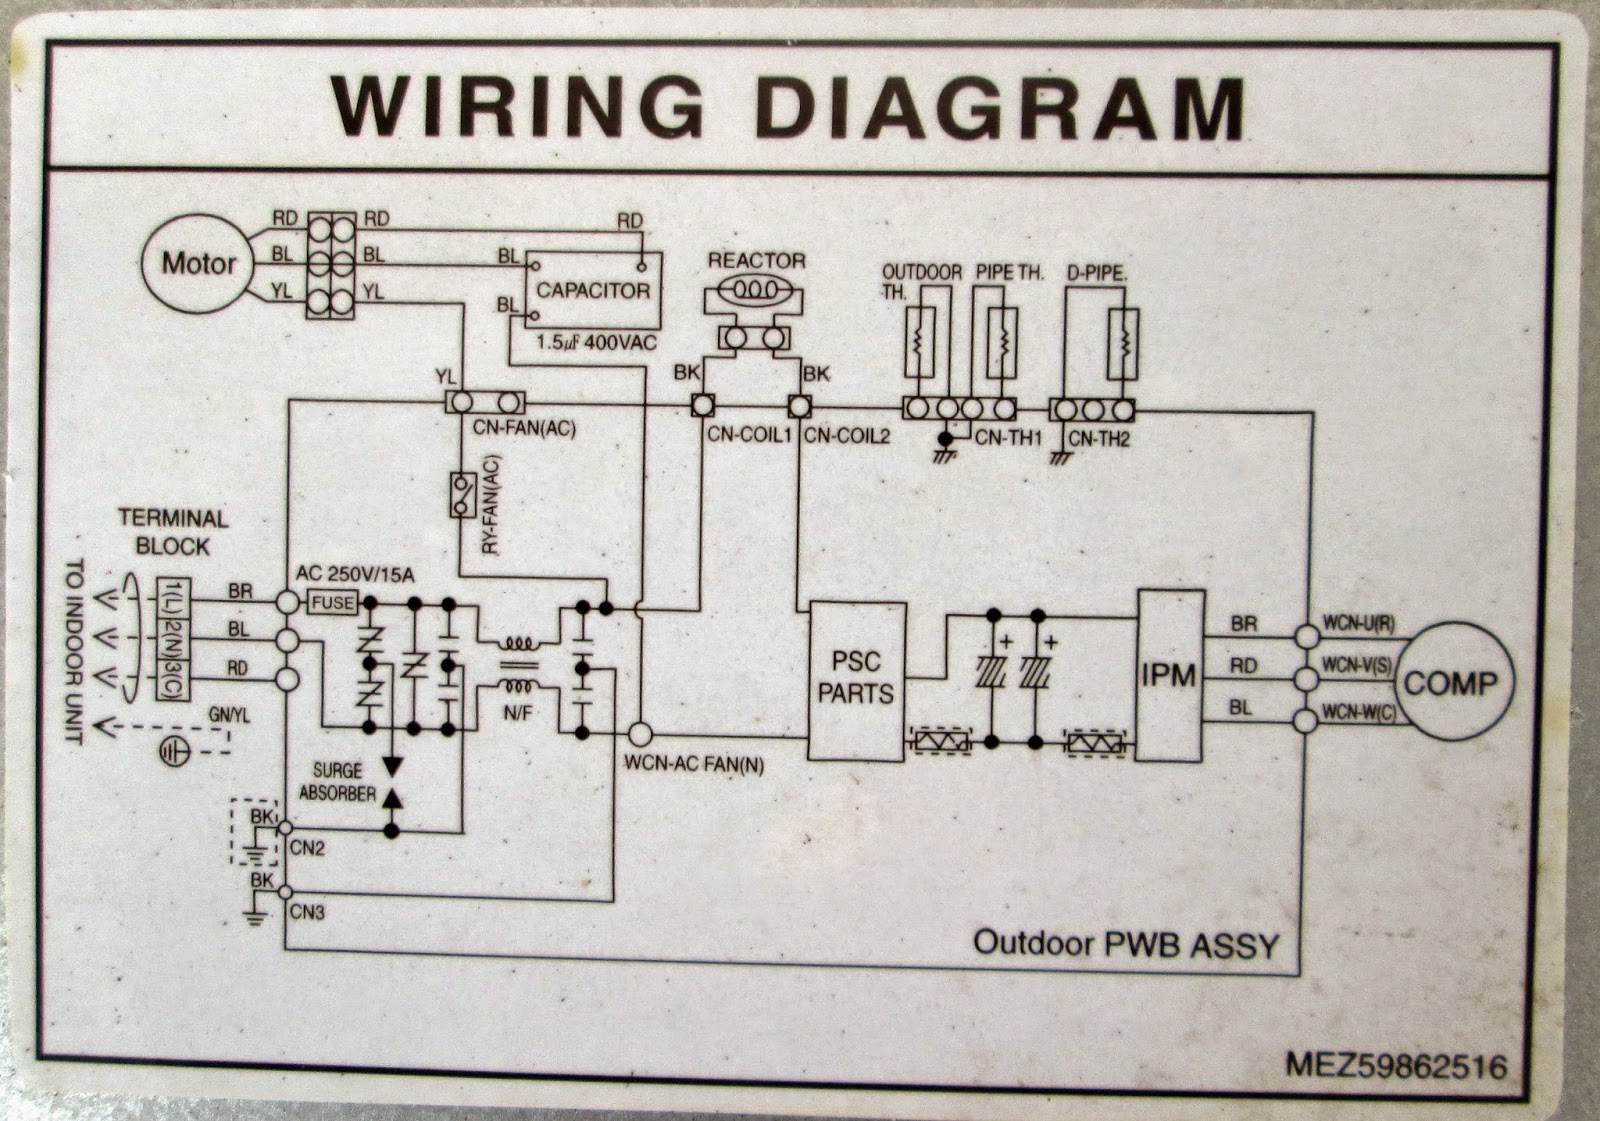 medium resolution of wiring diagram of split ac download wiring diagram wiring diagram of split ac download